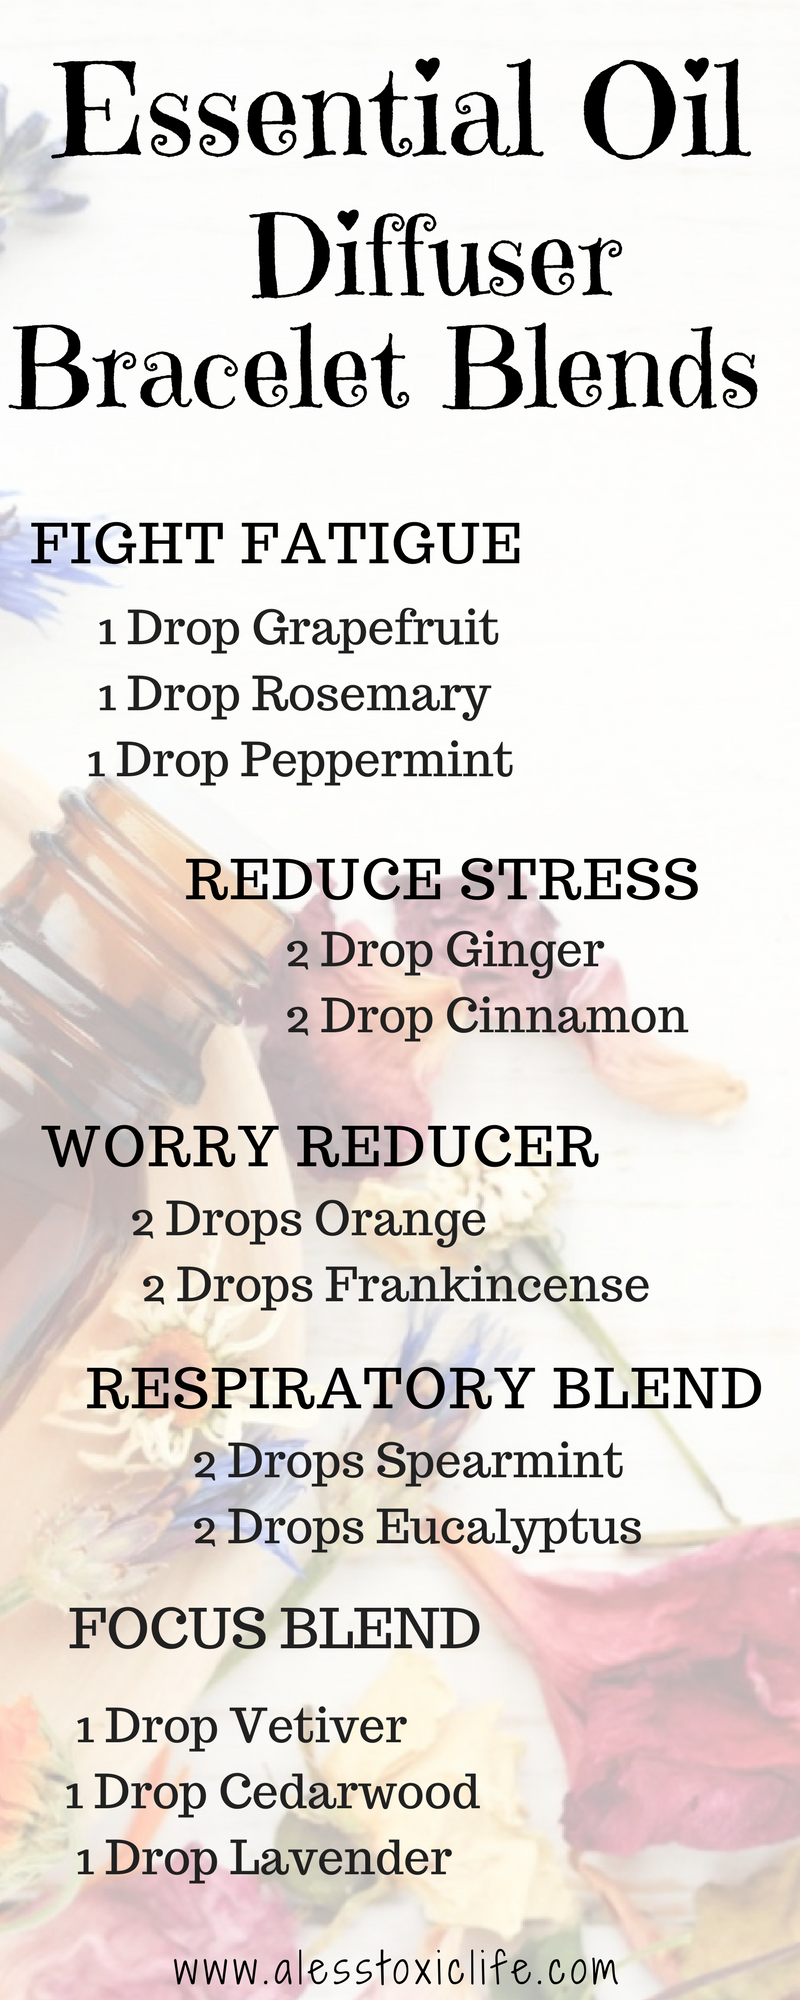 Essential Oil Diffuser Jewelry and Recipes Essential